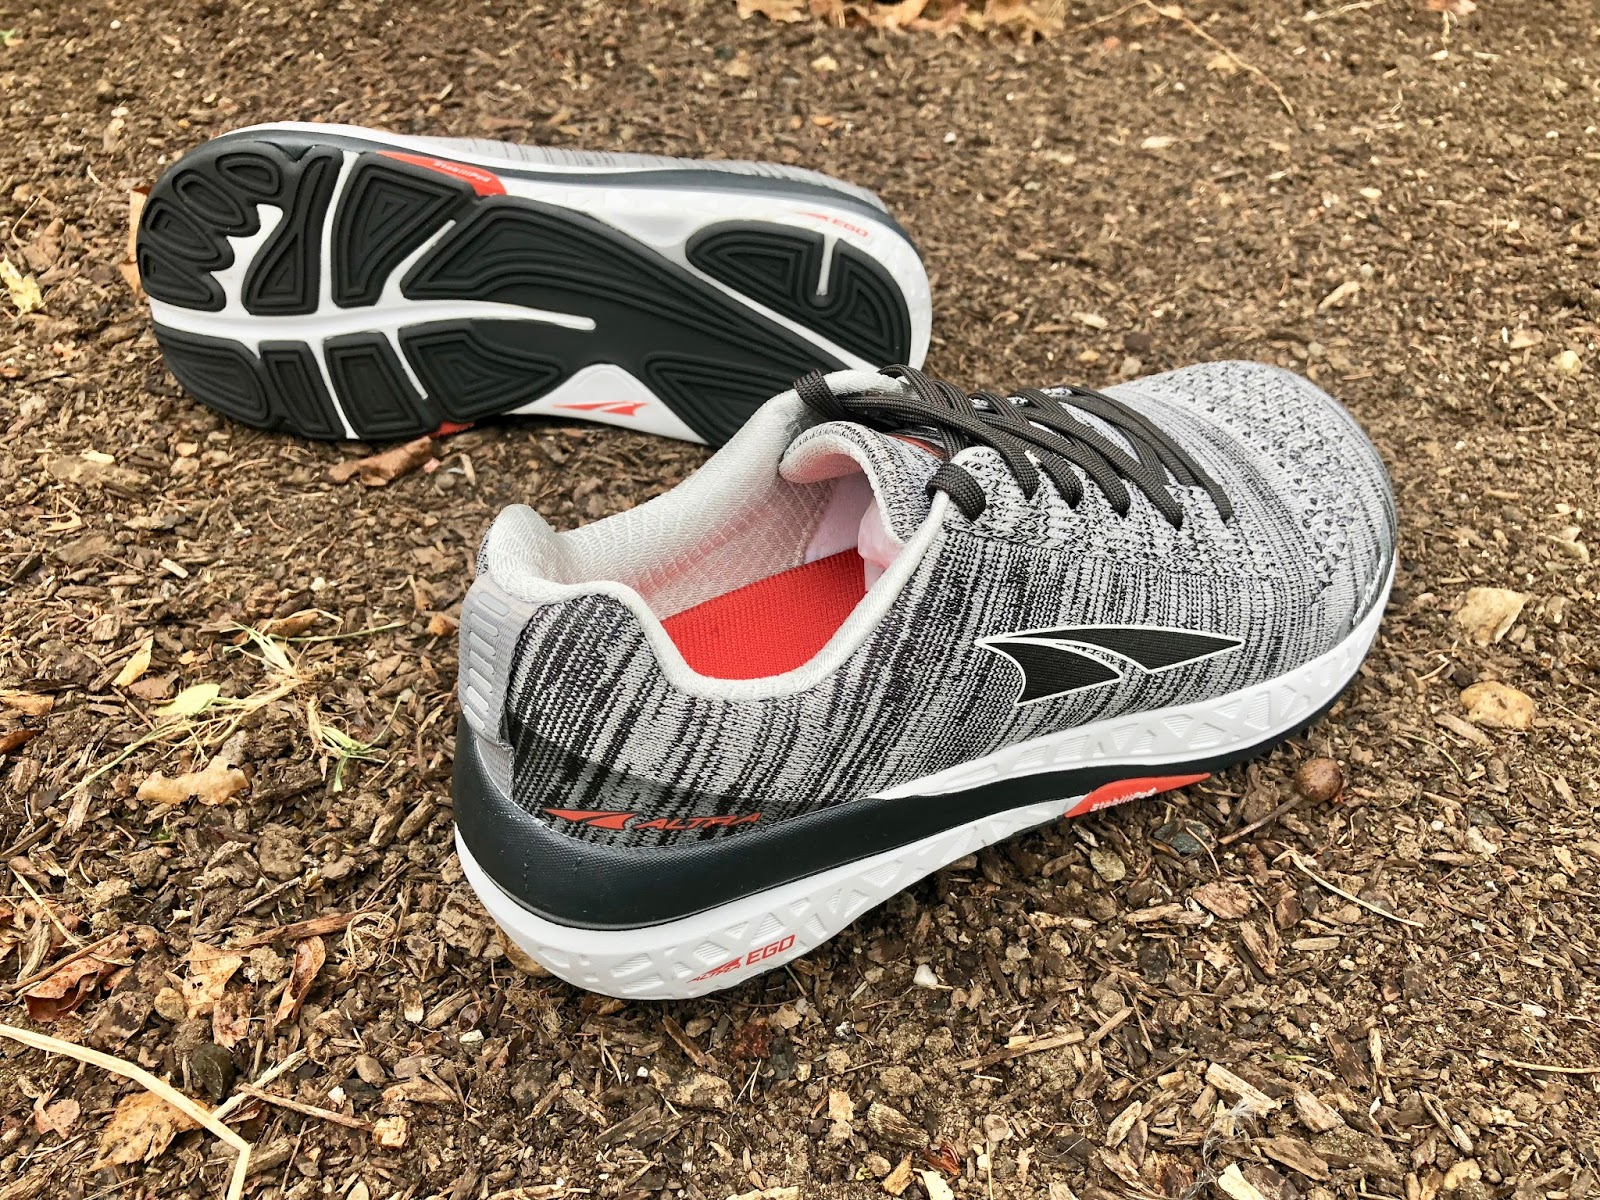 wholesale dealer c0f25 75a61 Road Trail Run: Altra Running Paradigm 4.0 First Look and ...